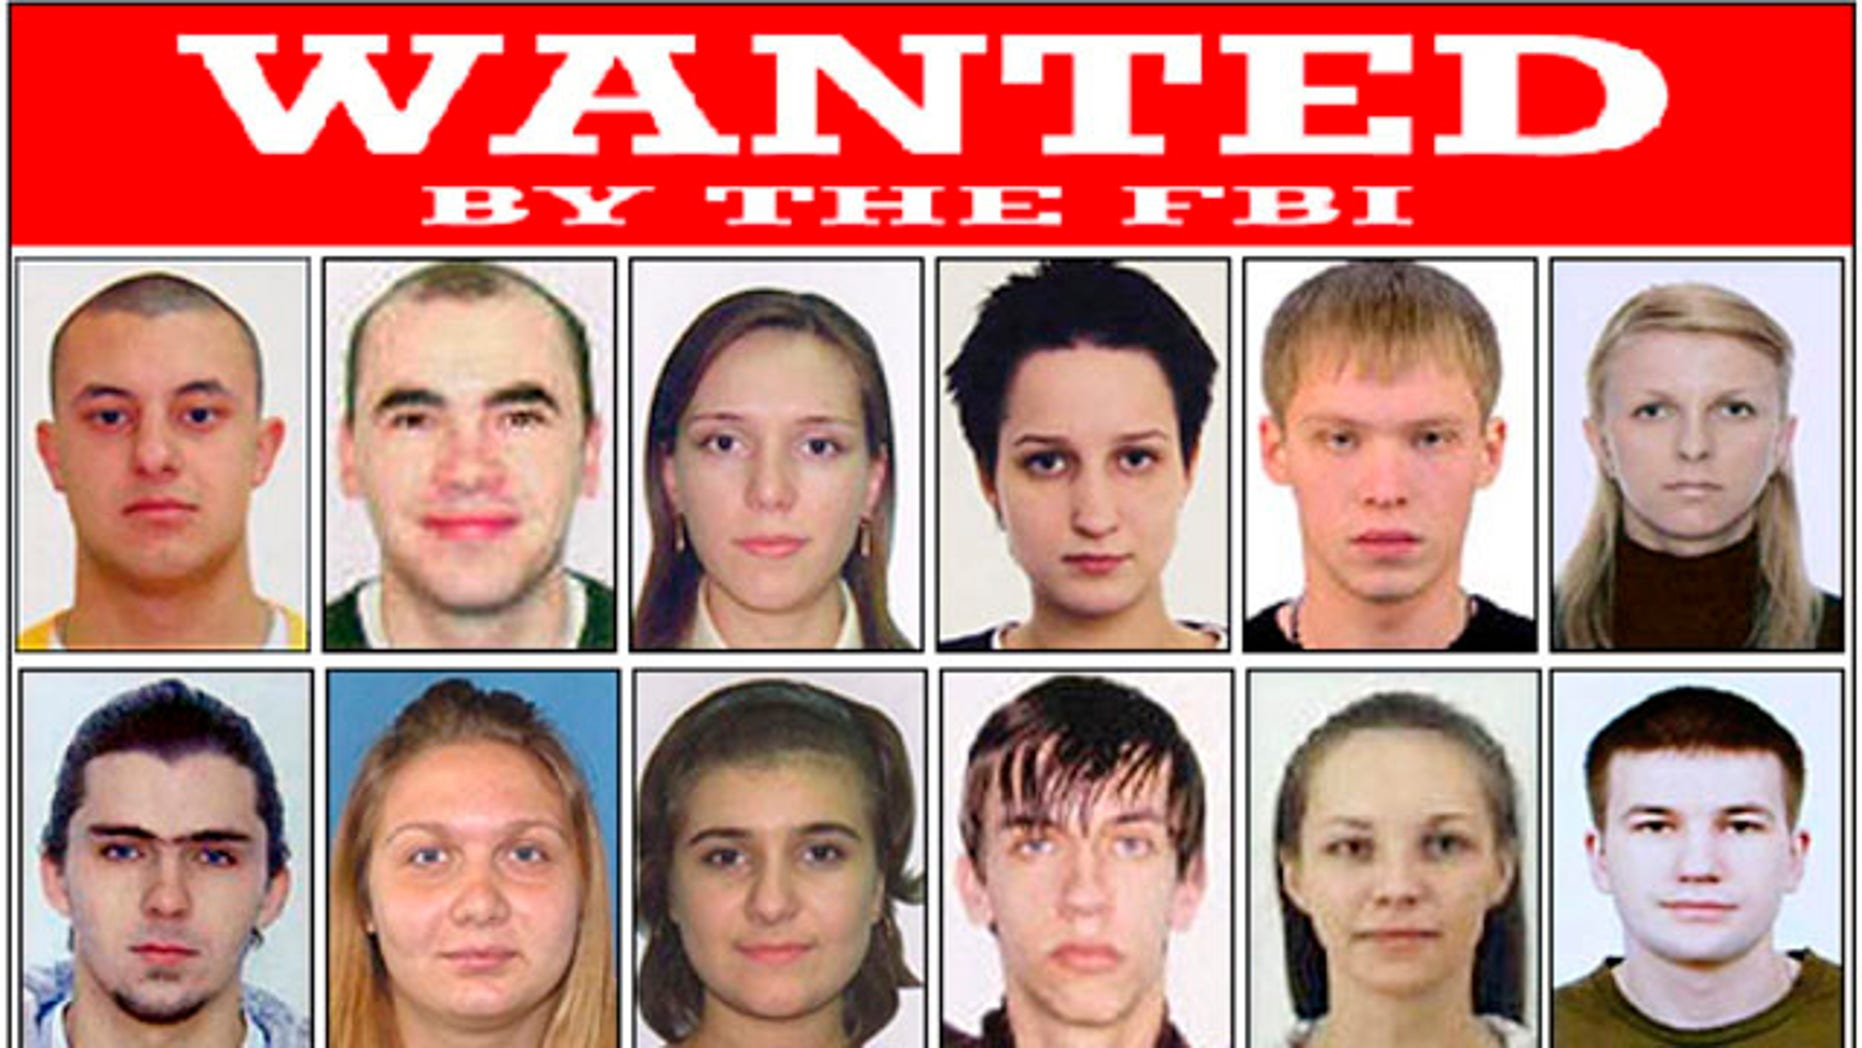 Part of a poster released by the FBI shows photos of Eastern European Cyber Criminals, wanted on a variety of federal charges stemming from criminal activities including money laundering, bank fraud, passport fraud, and identity theft in New York.